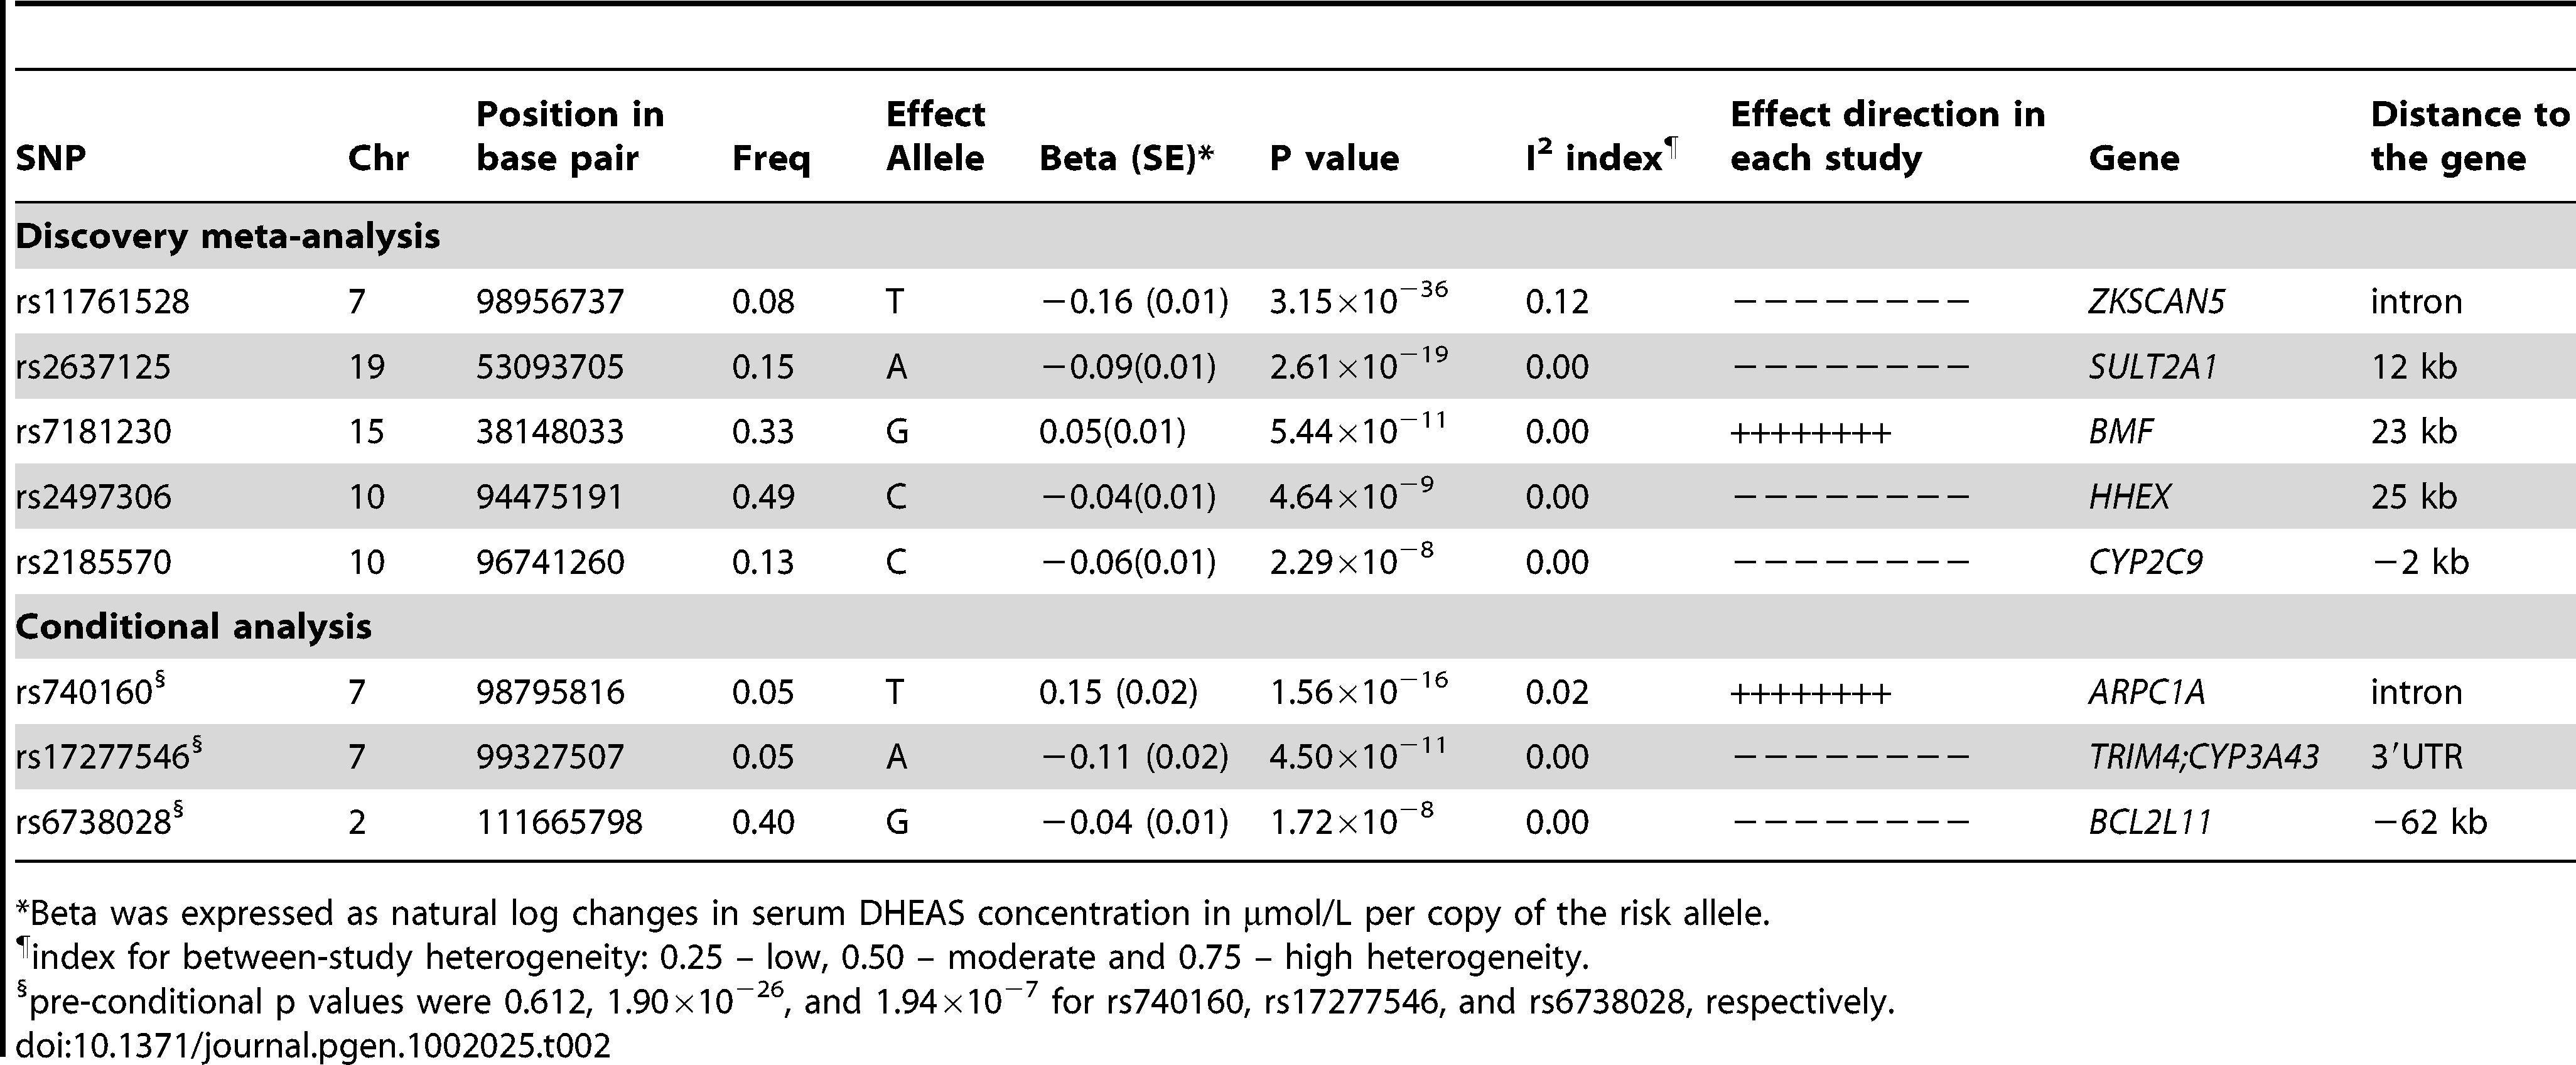 SNPs associated with serum DHEAS concentrations: genome-wide results of meta-analysis of men and women combined.